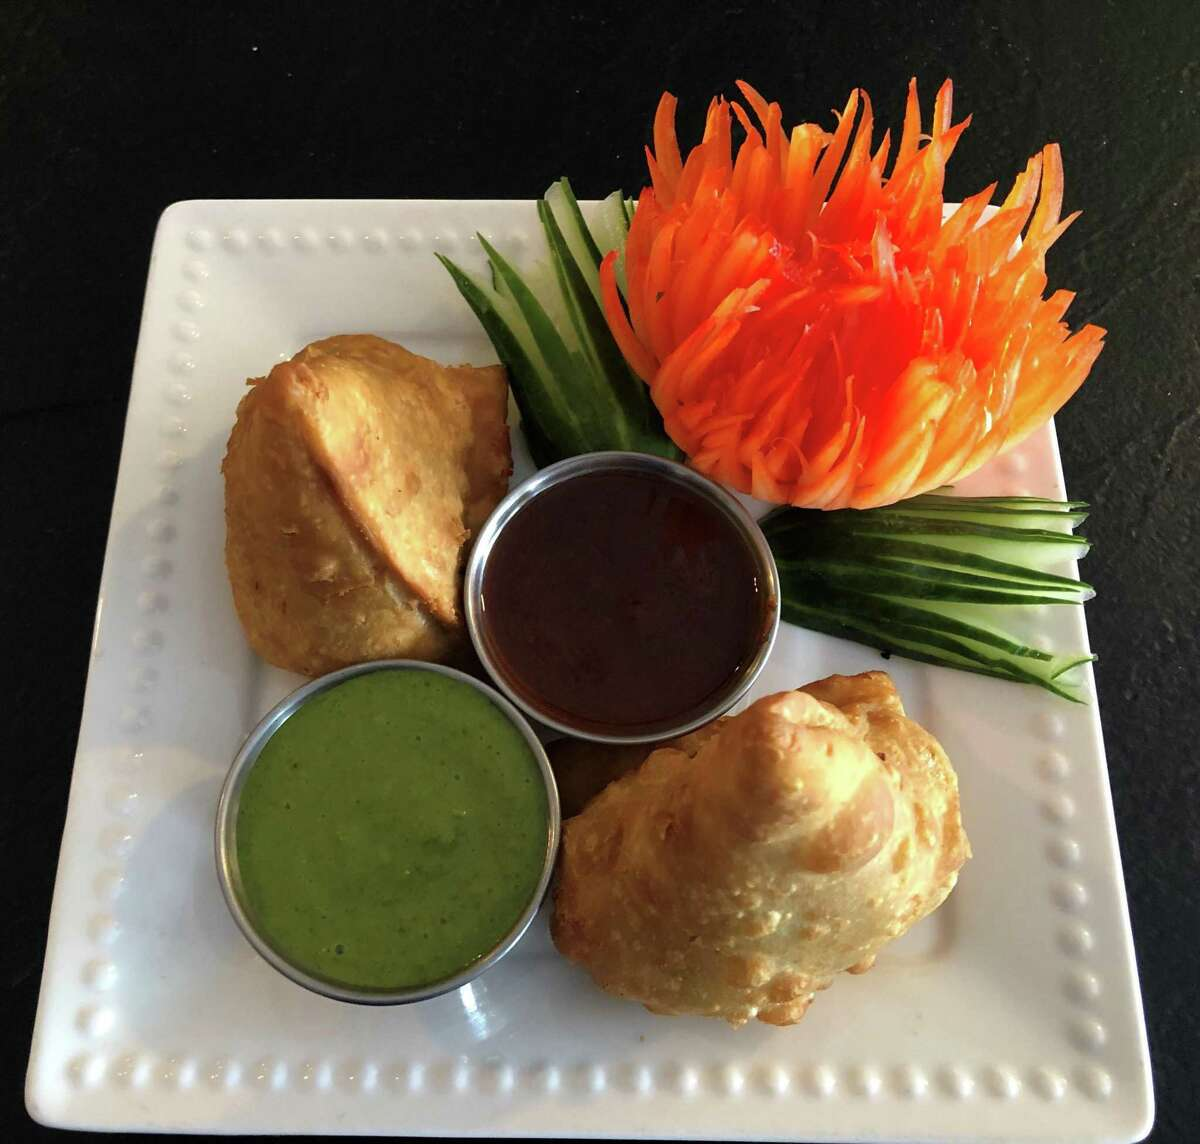 Spectrum/Vinjith Vikaram and Sagar Ahuja are the new owners of Tandoori Flames at 471 Danbury Road in New Milford. Plated above are vegetable samosas, seasoned potato fritters with peas. May 2019